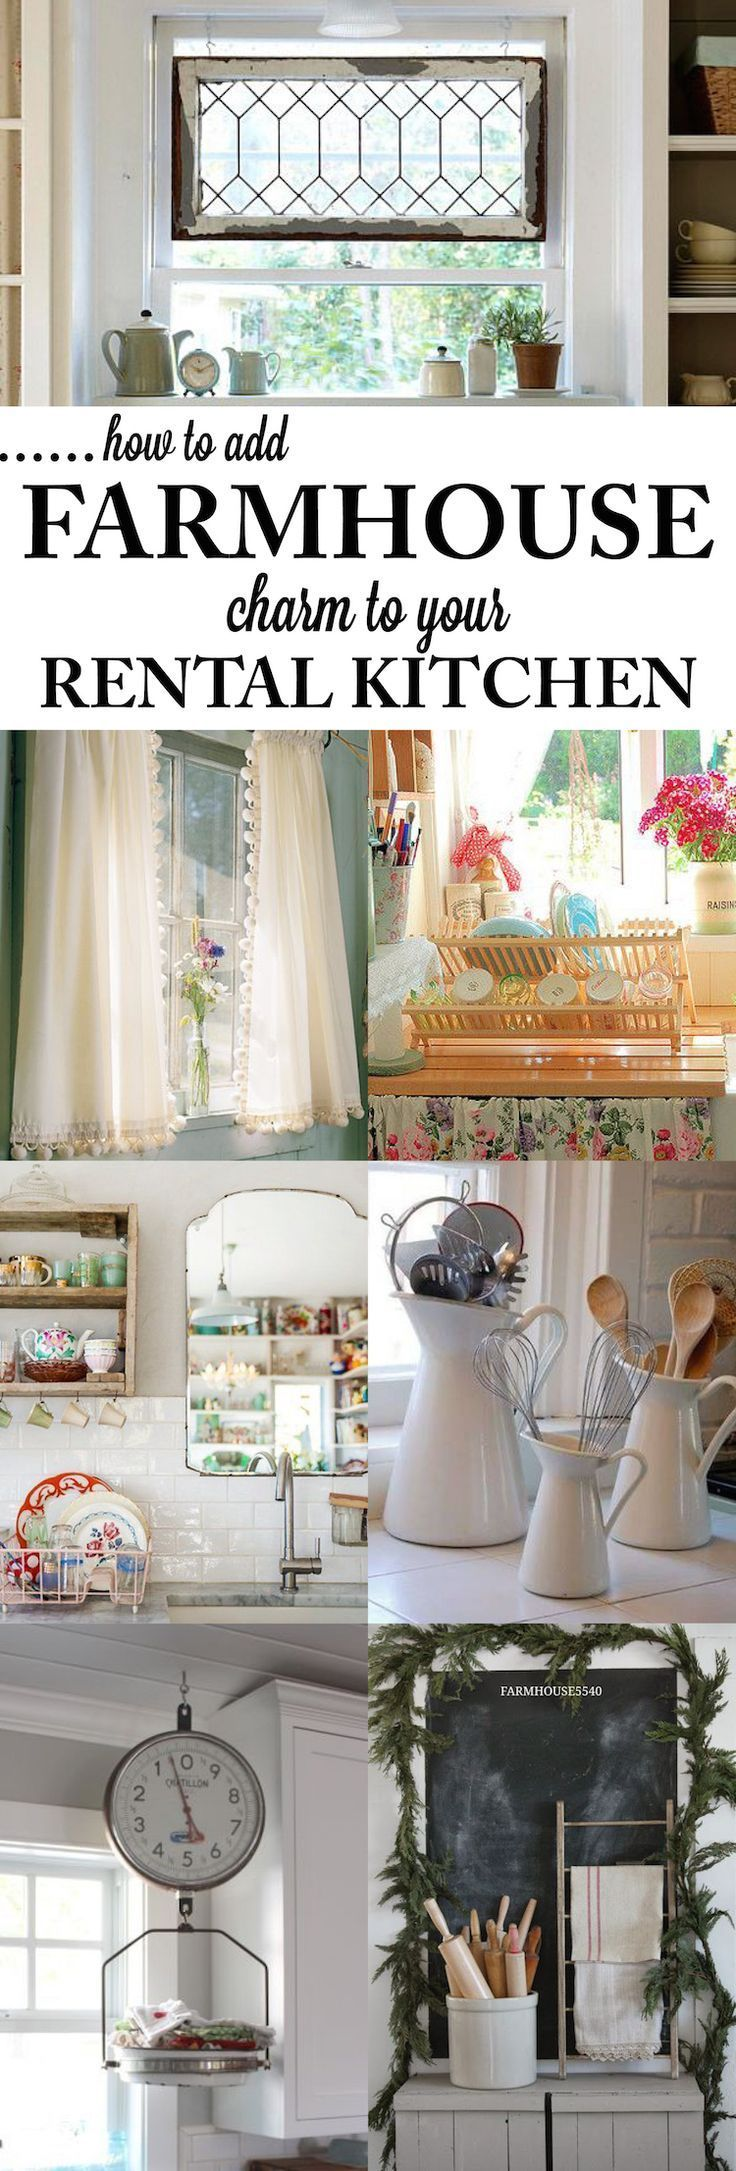 Rustic kitchen window decor  how to add farmhouse decor to your rental house fun easy and